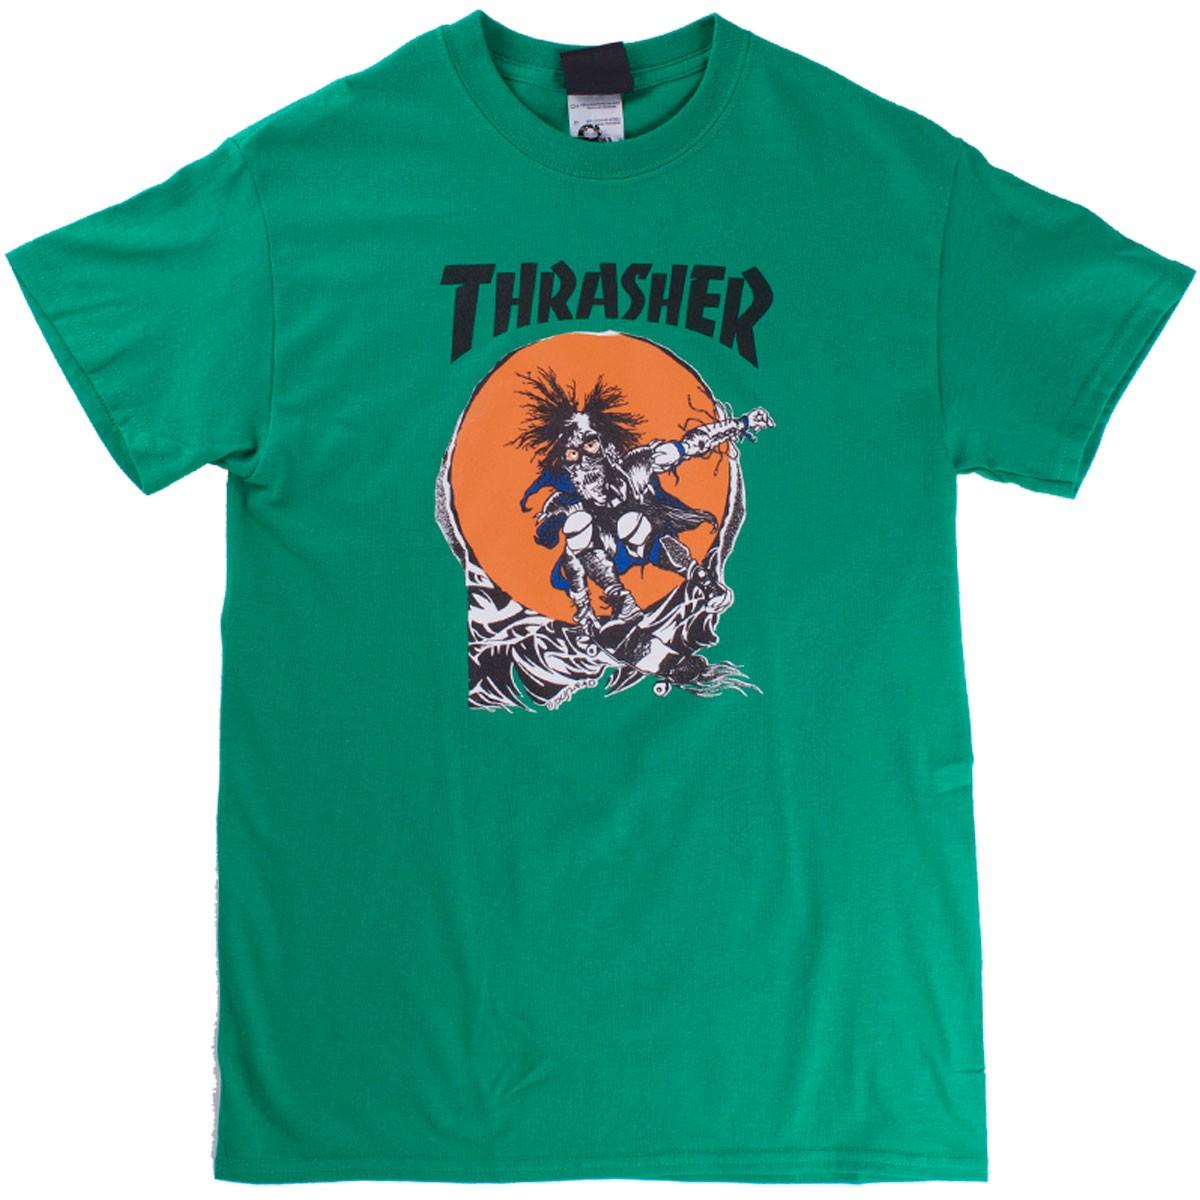 Thrasher Skate Outlaw T-Shirt - Kelly Green